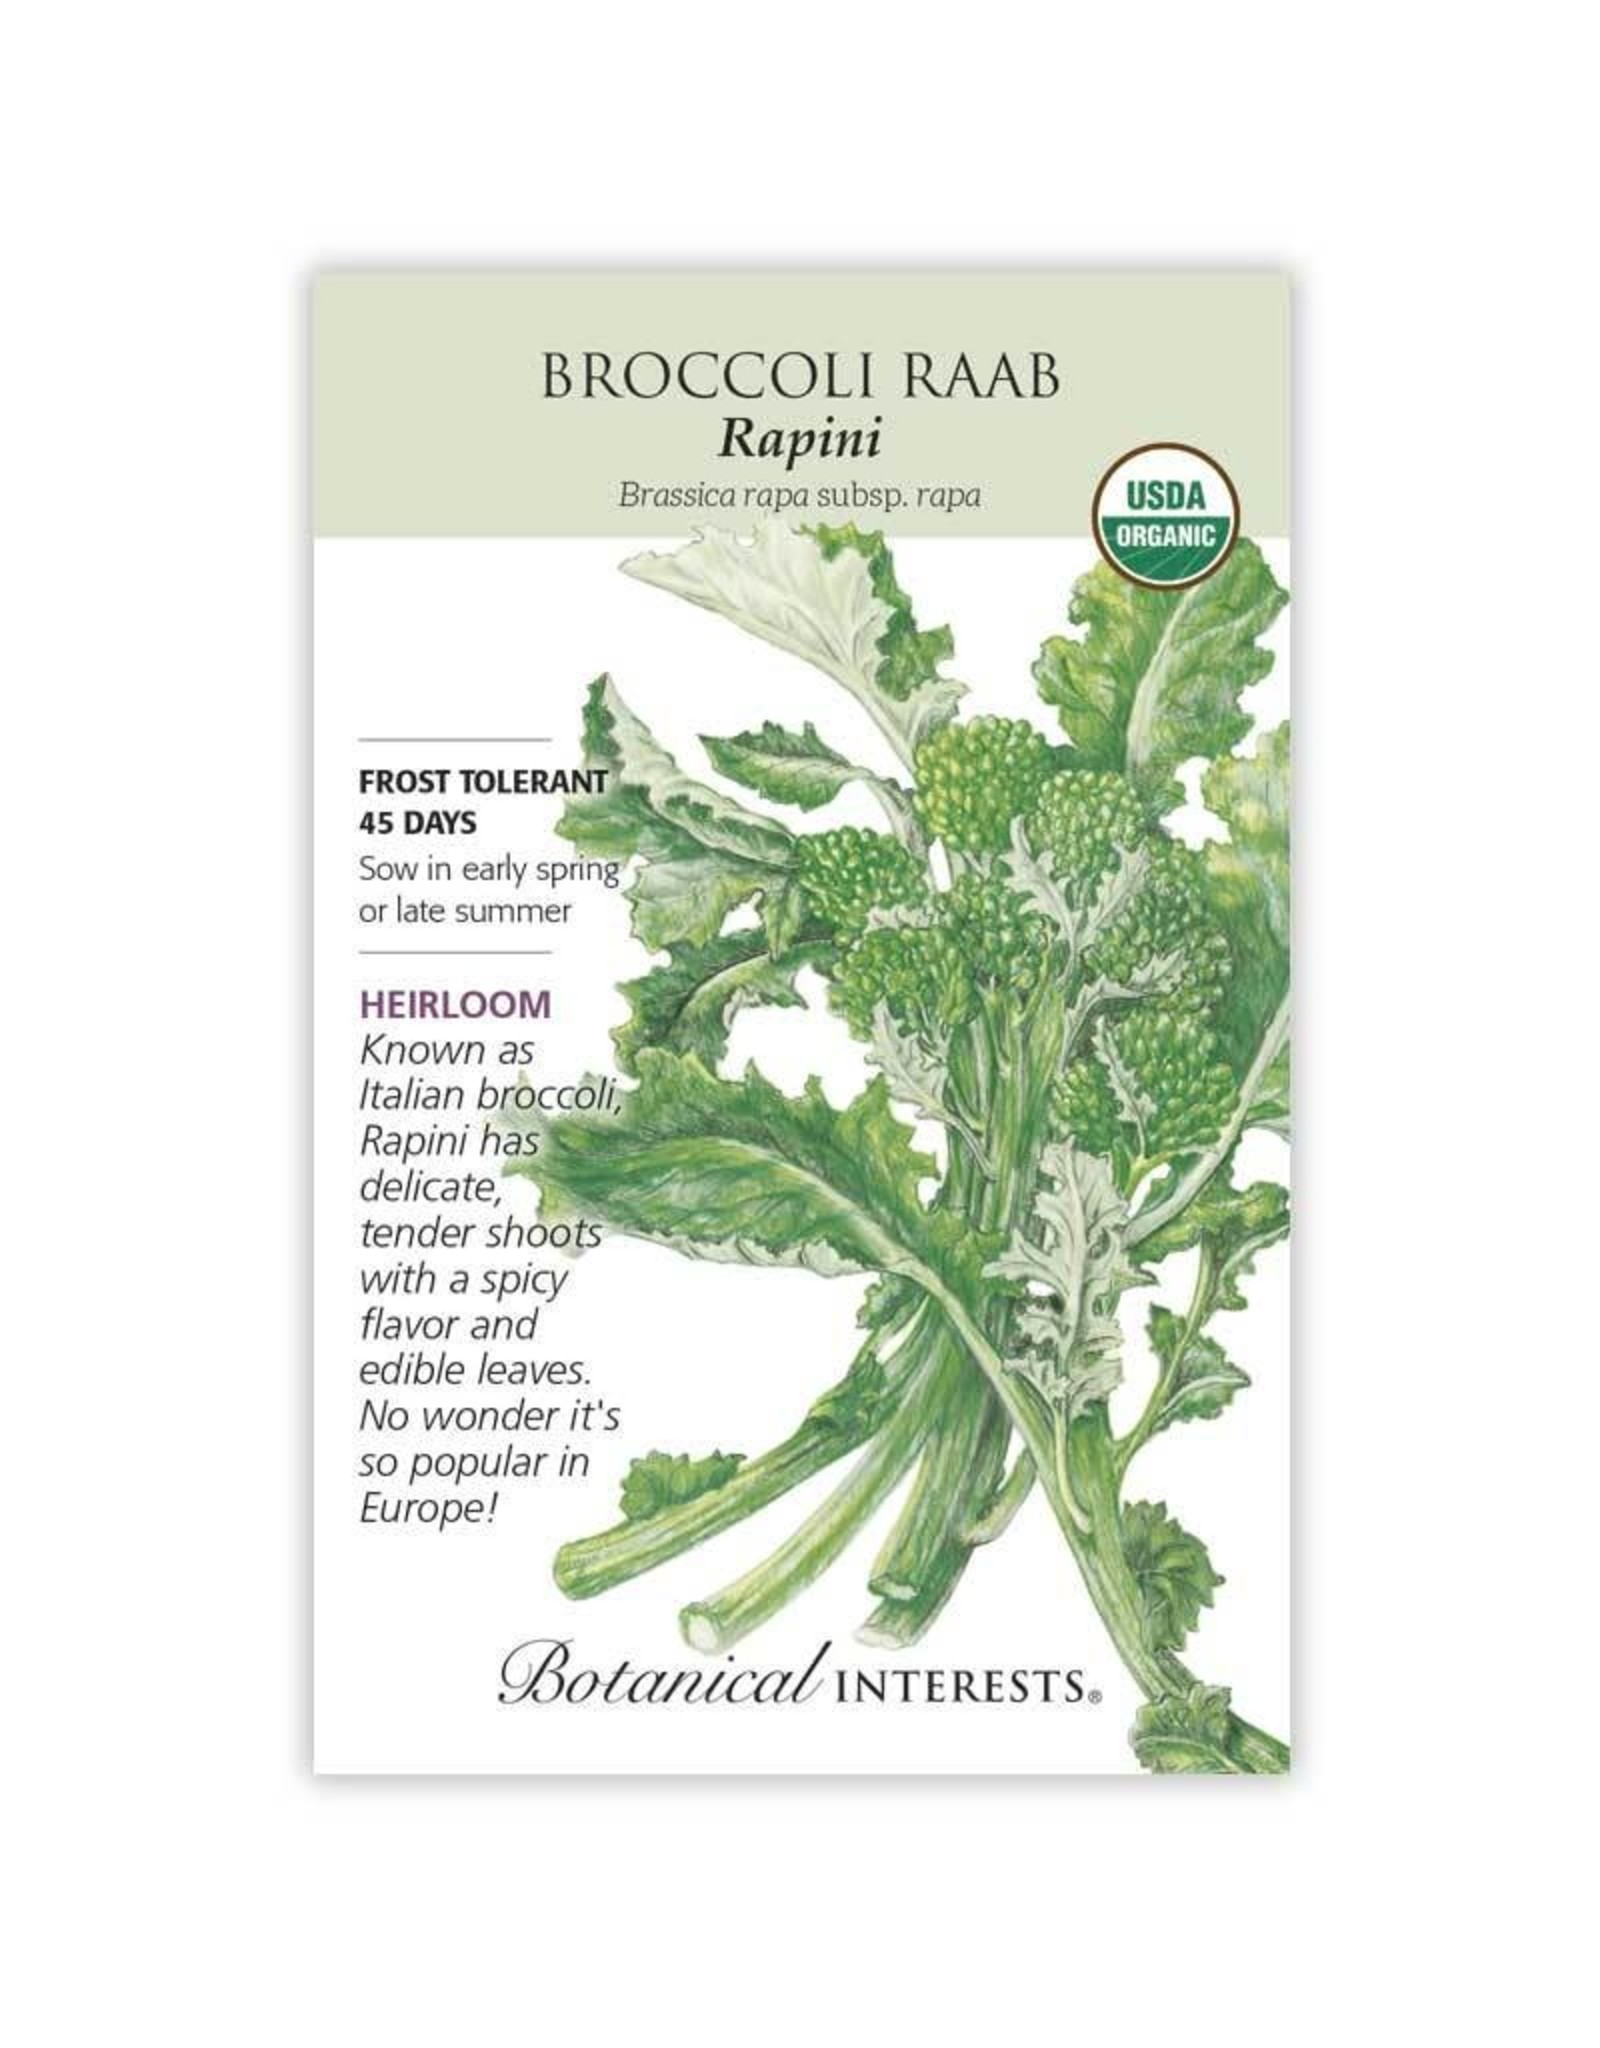 Seeds - Broccoli Raab Rapini Org